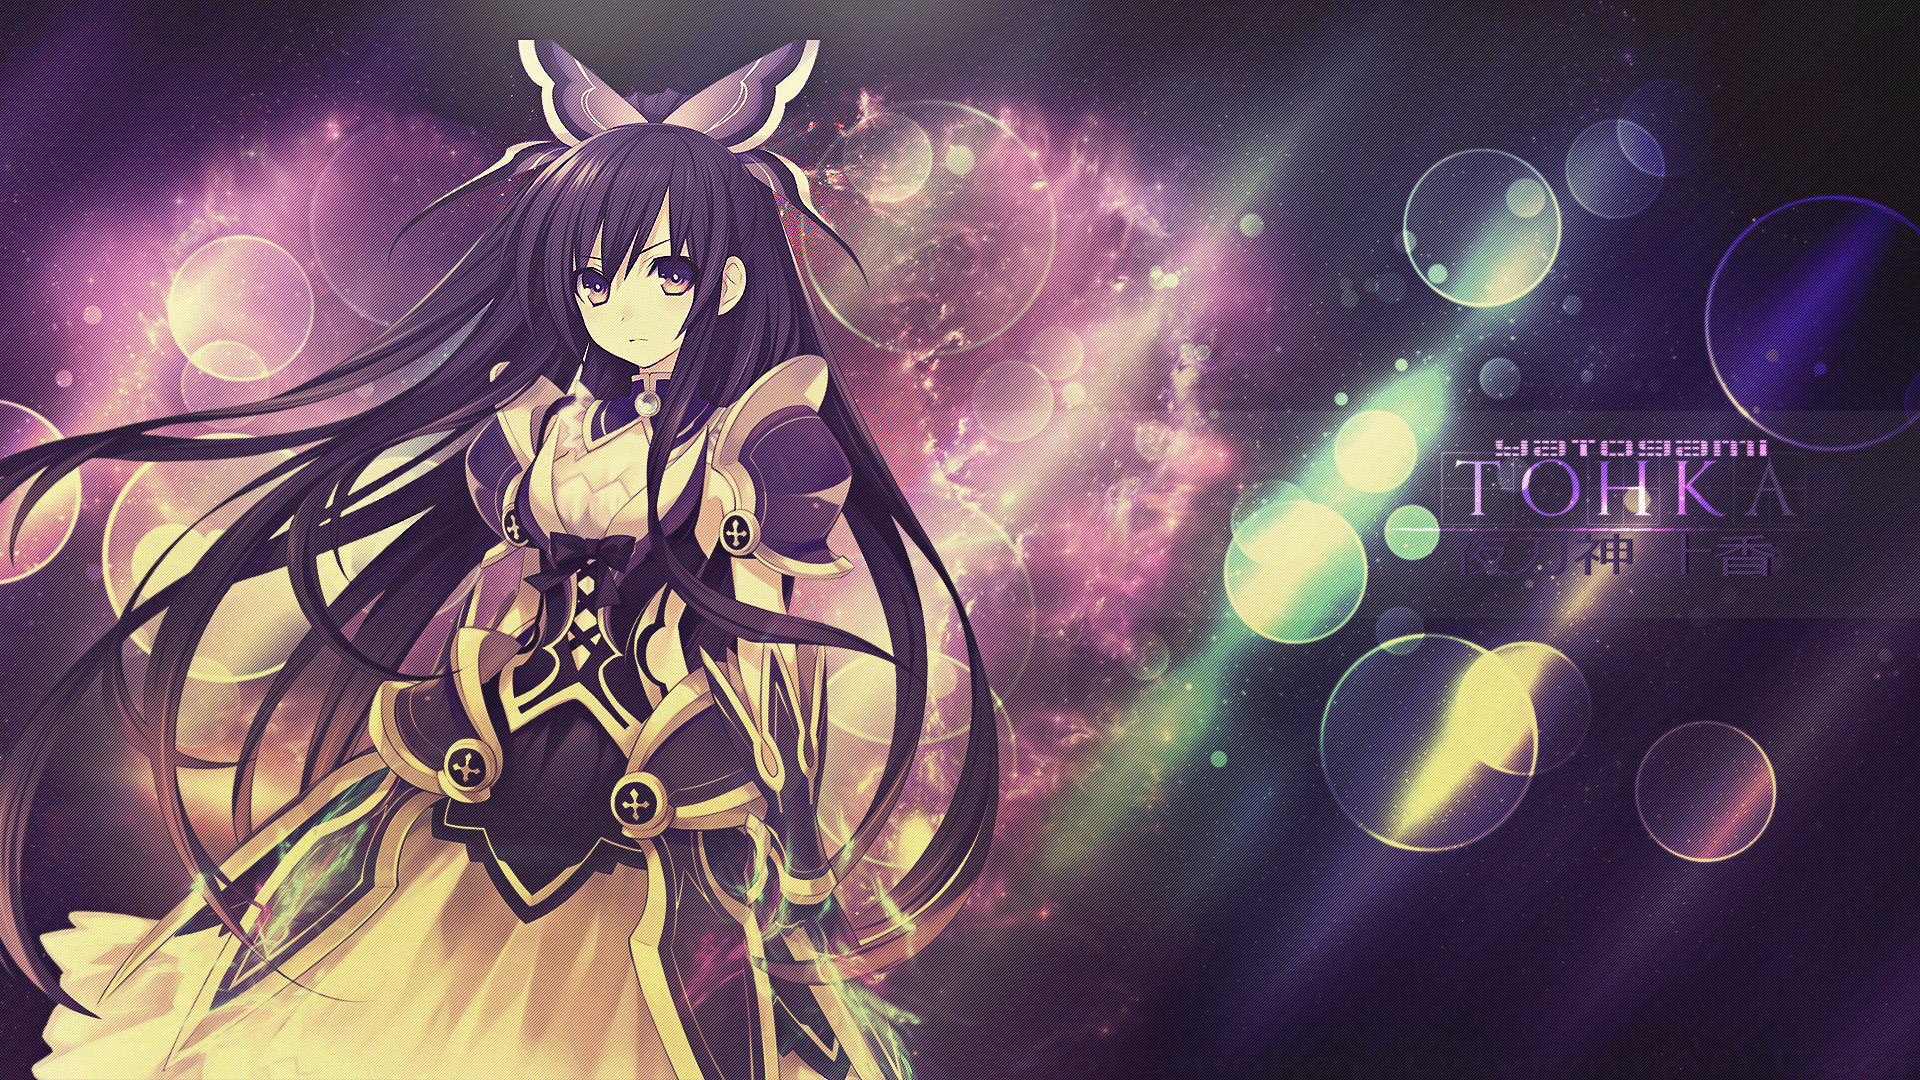 Tohka (Date A Live) HD Wallpaper From Gallsource.com